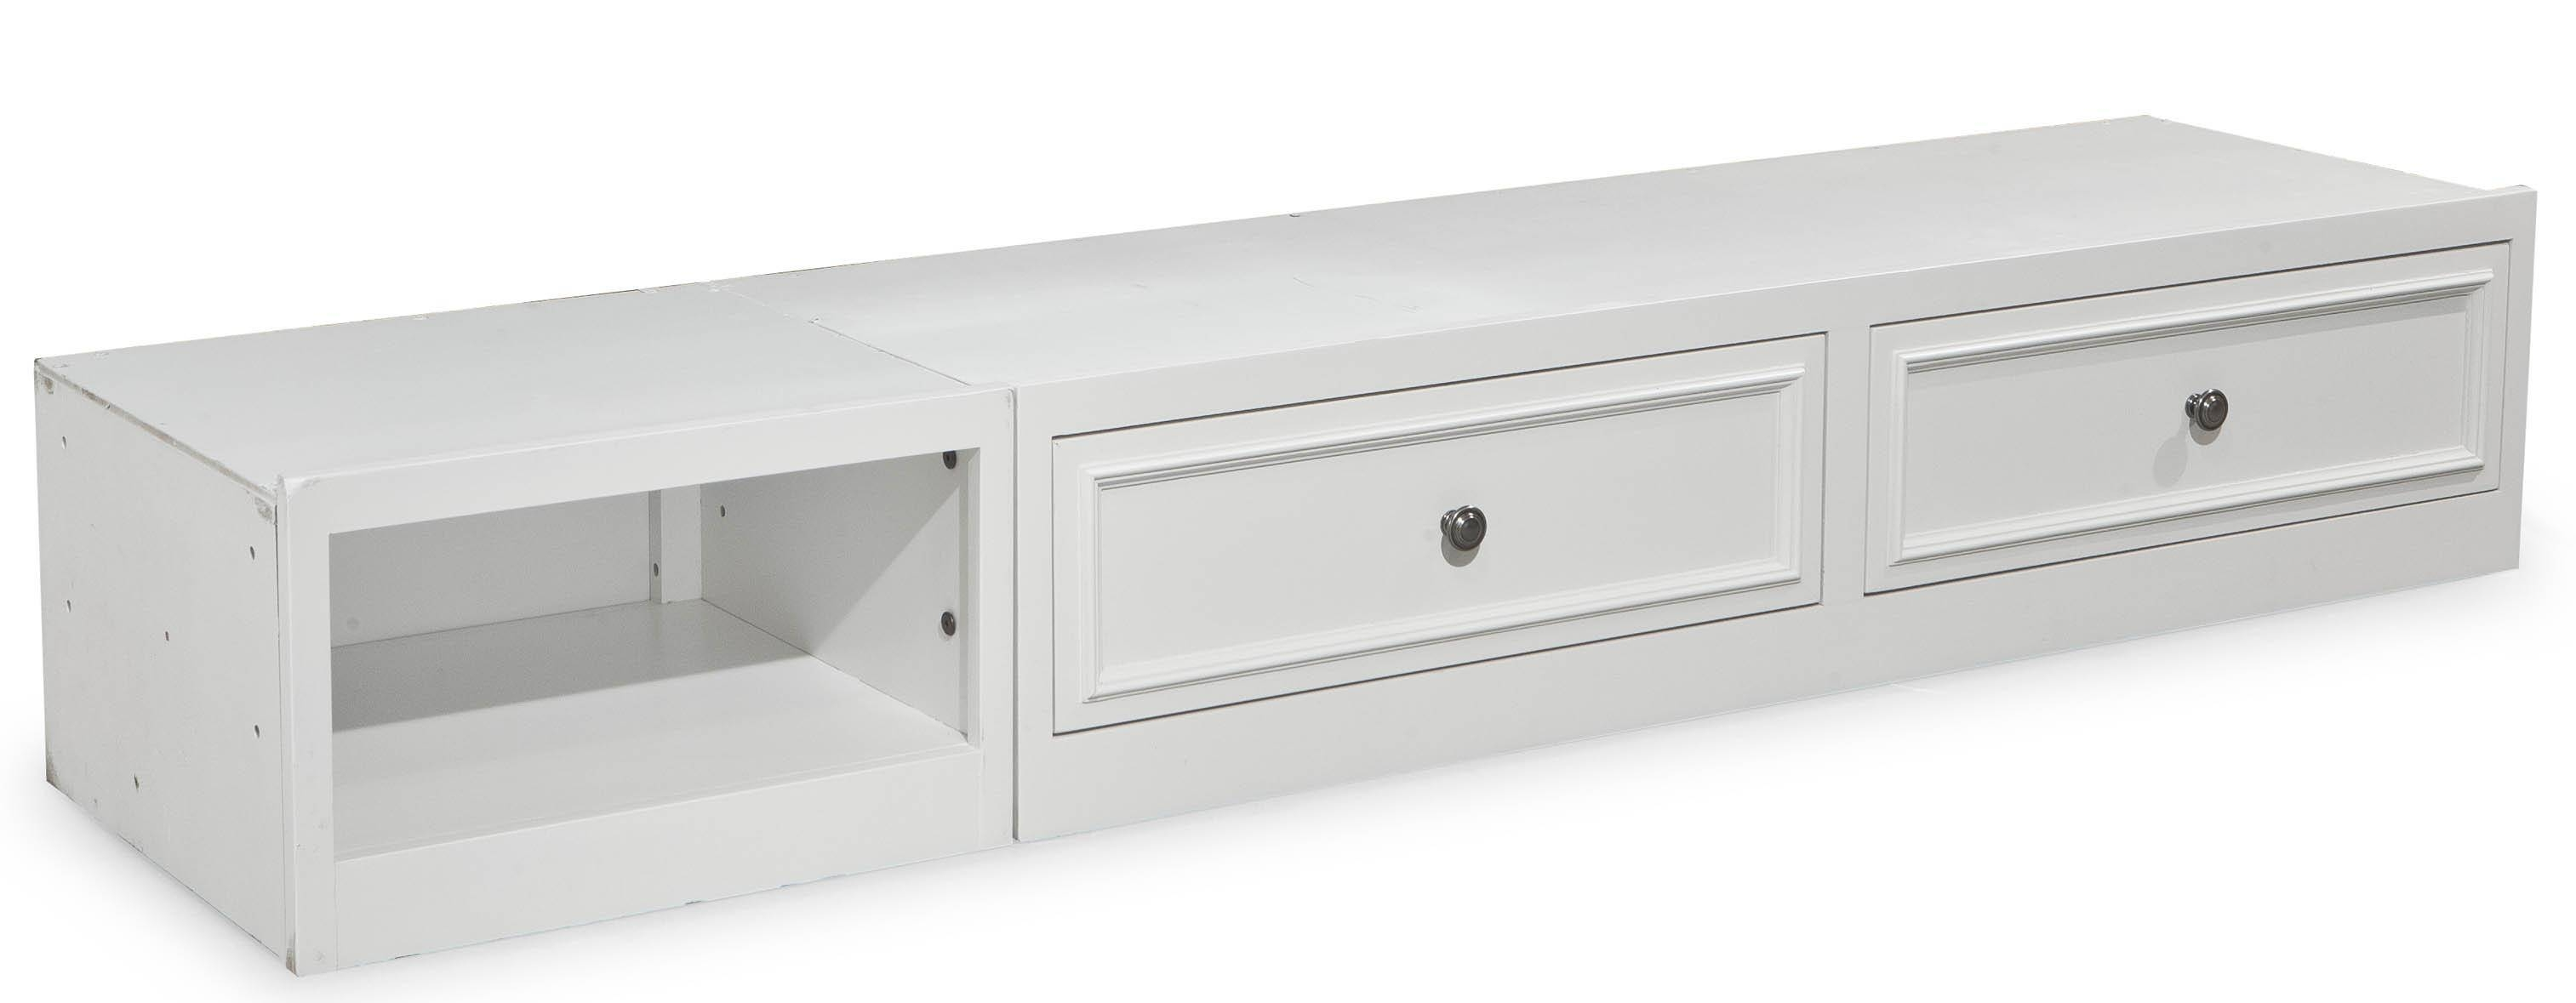 Legacy Classic Kids Madison Underbed Storage Unit - Homeworld inside Sideboard Units (Image 11 of 30)